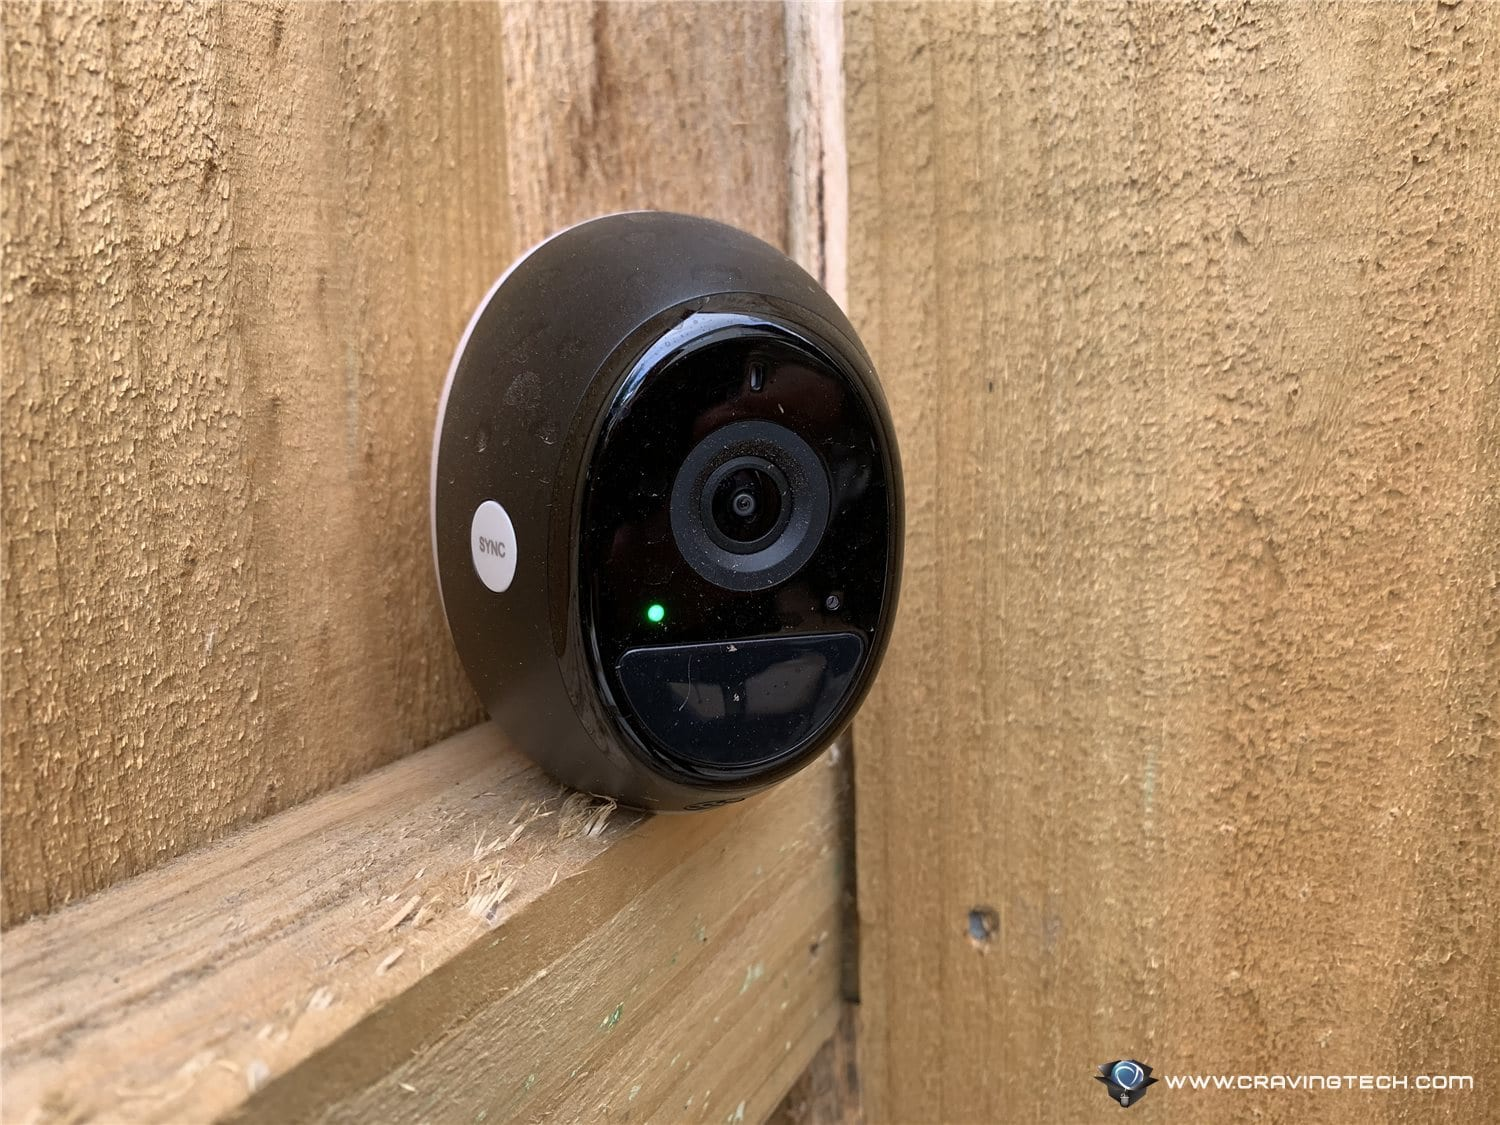 hight resolution of d link omna wire free indoor outdoor camera kit review design features